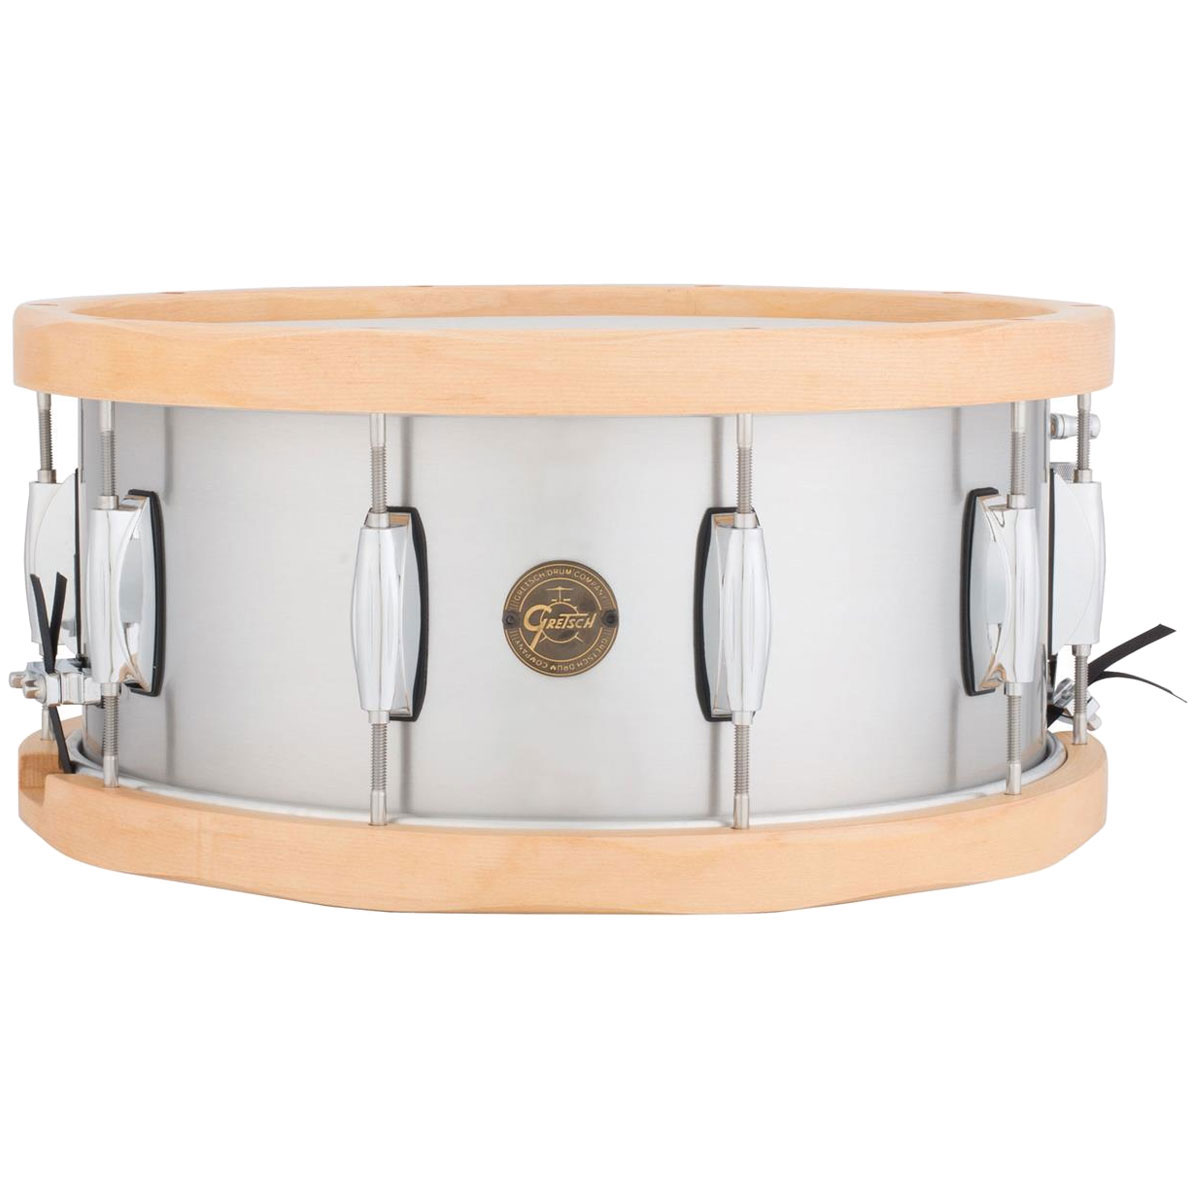 """Gretsch 6.5"""" x 14"""" Full Range Aluminum Snare Drum with Wood Hoops"""